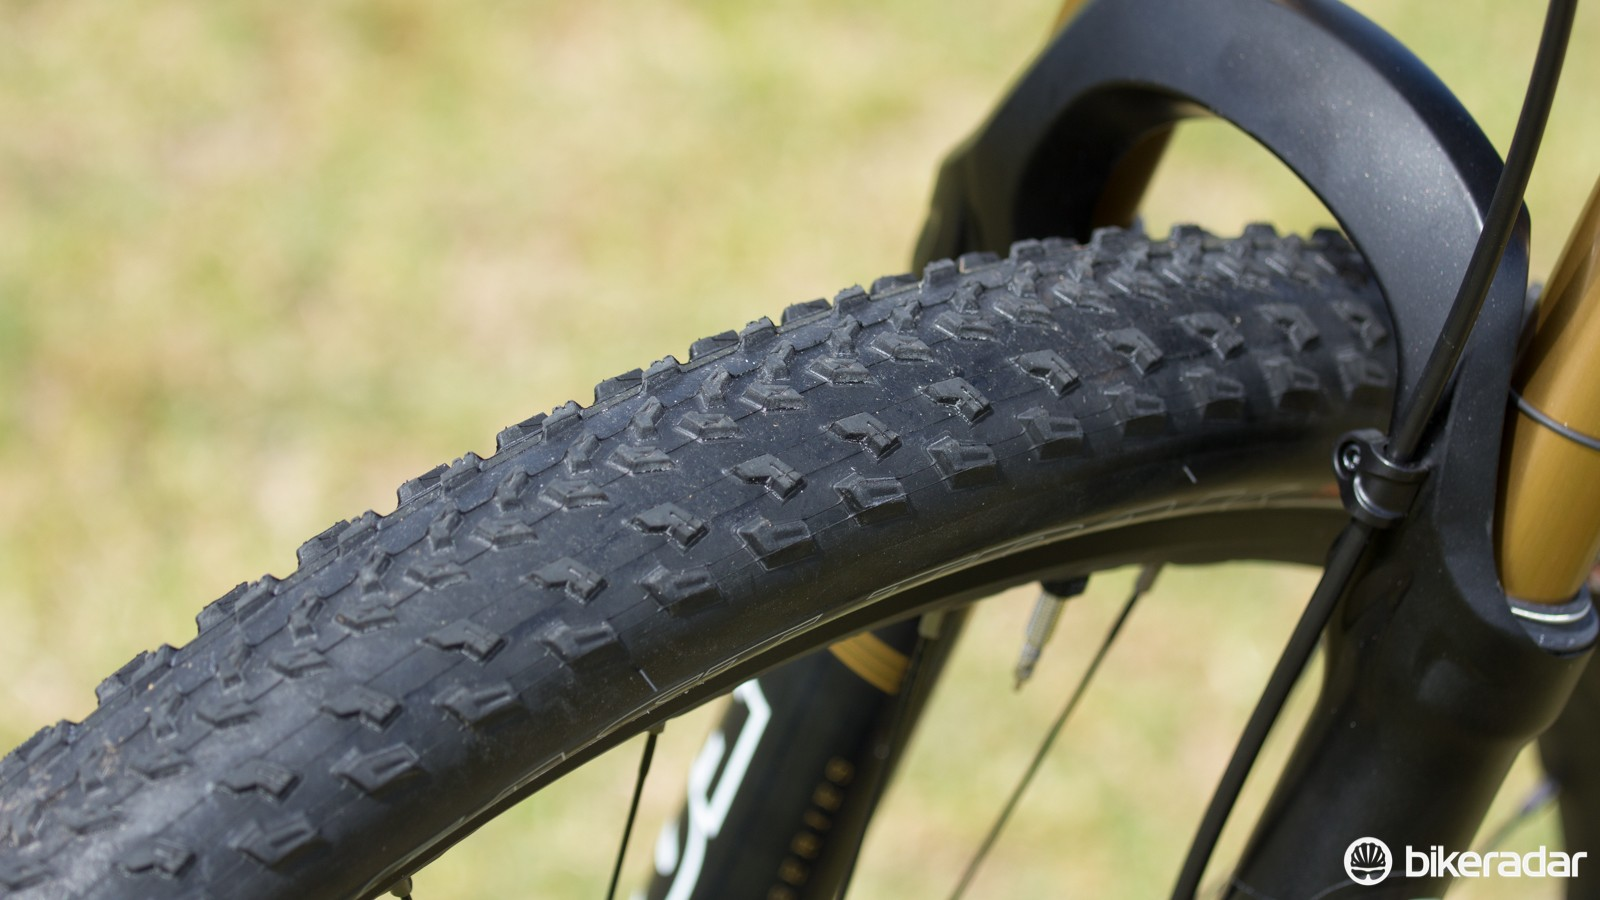 Specialized's 2015 Fast Trak Control 2.2in tyres, set up tubeless. We had issues with getting a properly reliable seal on these tyres during the race weekend